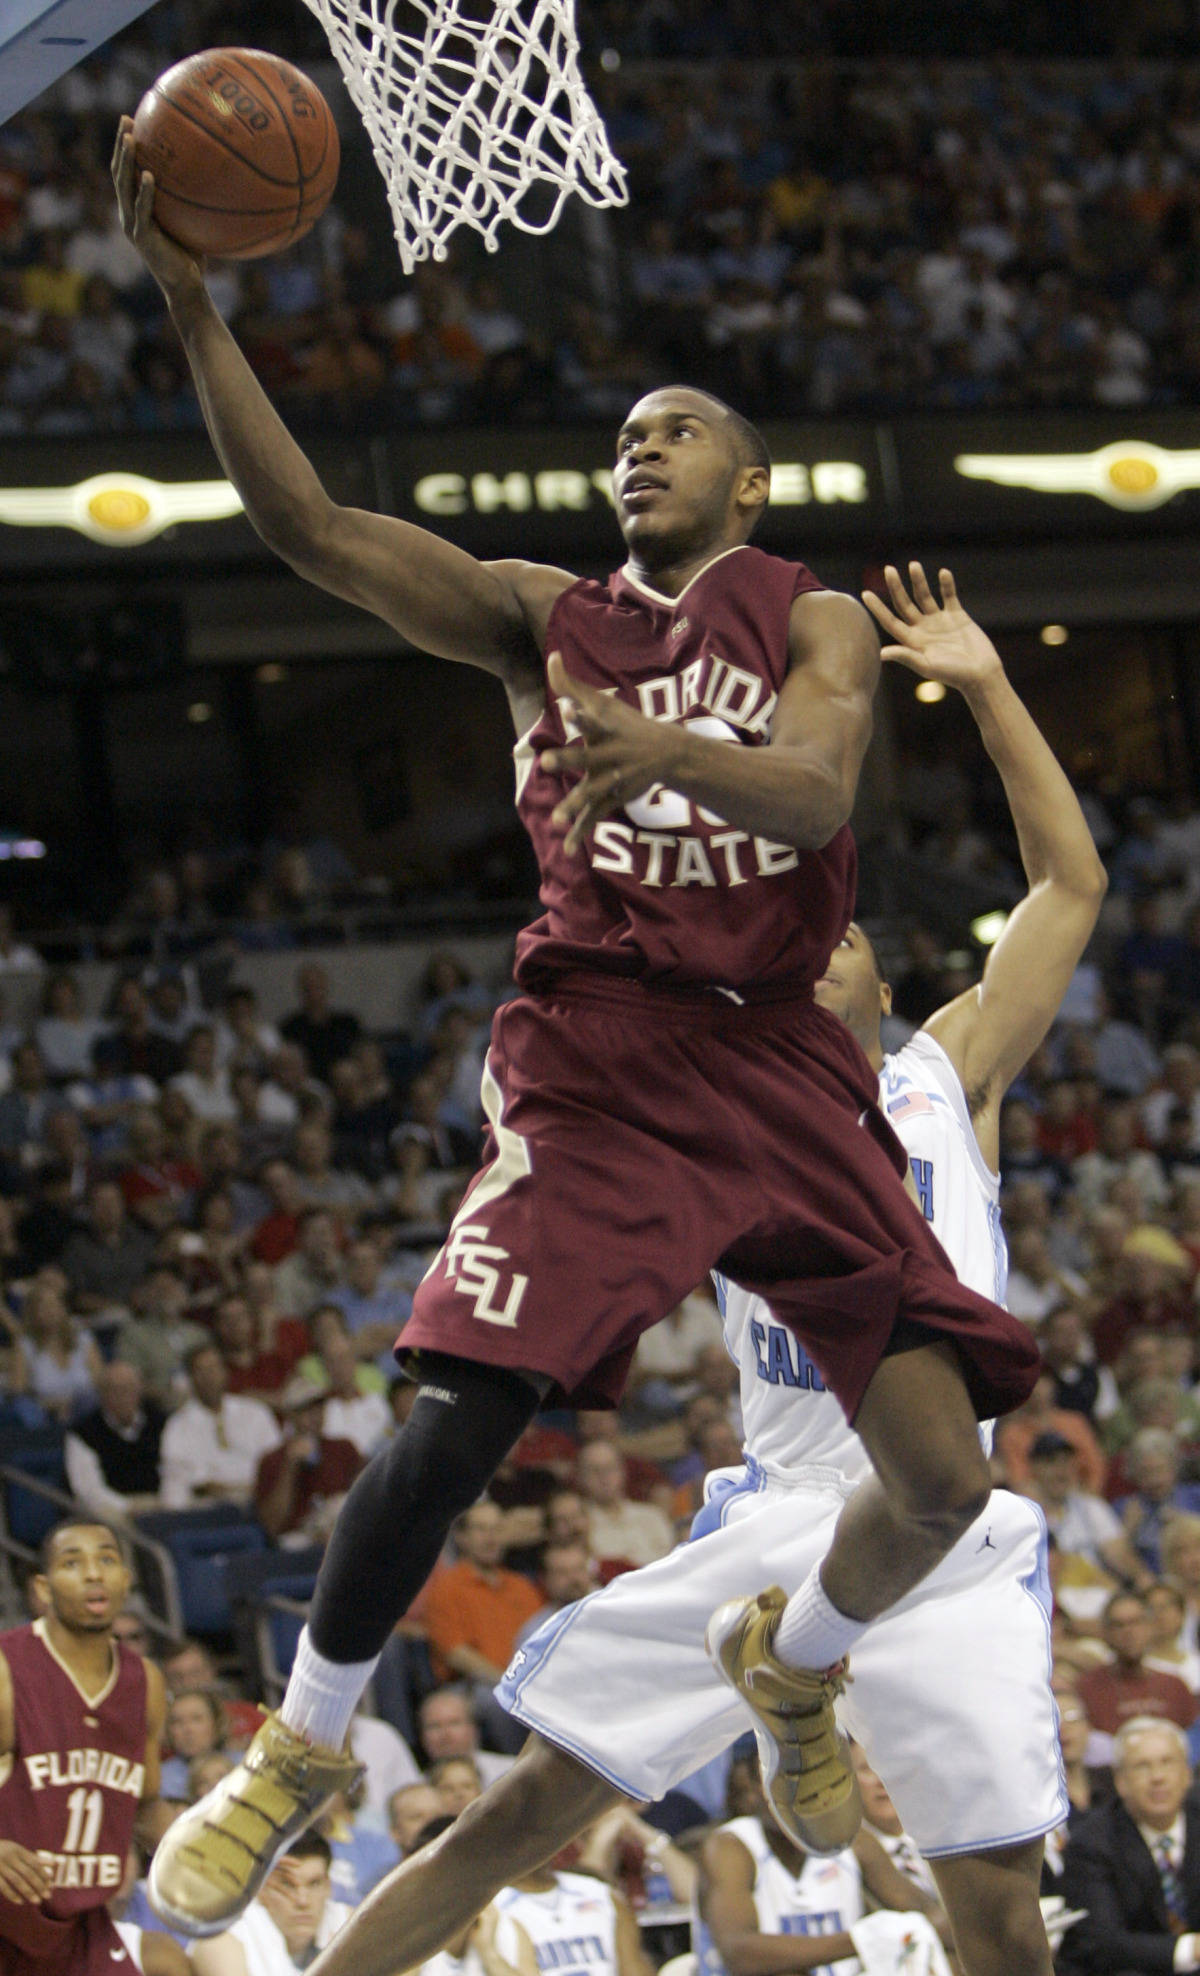 Florida State's Jason Rich leaps for a layup during a second round game of the Men's Atlantic Coast Conference basketball tournament against North Carolina in Tampa, Fla., Friday, March 9, 2007. (AP Photo/John Raoux)